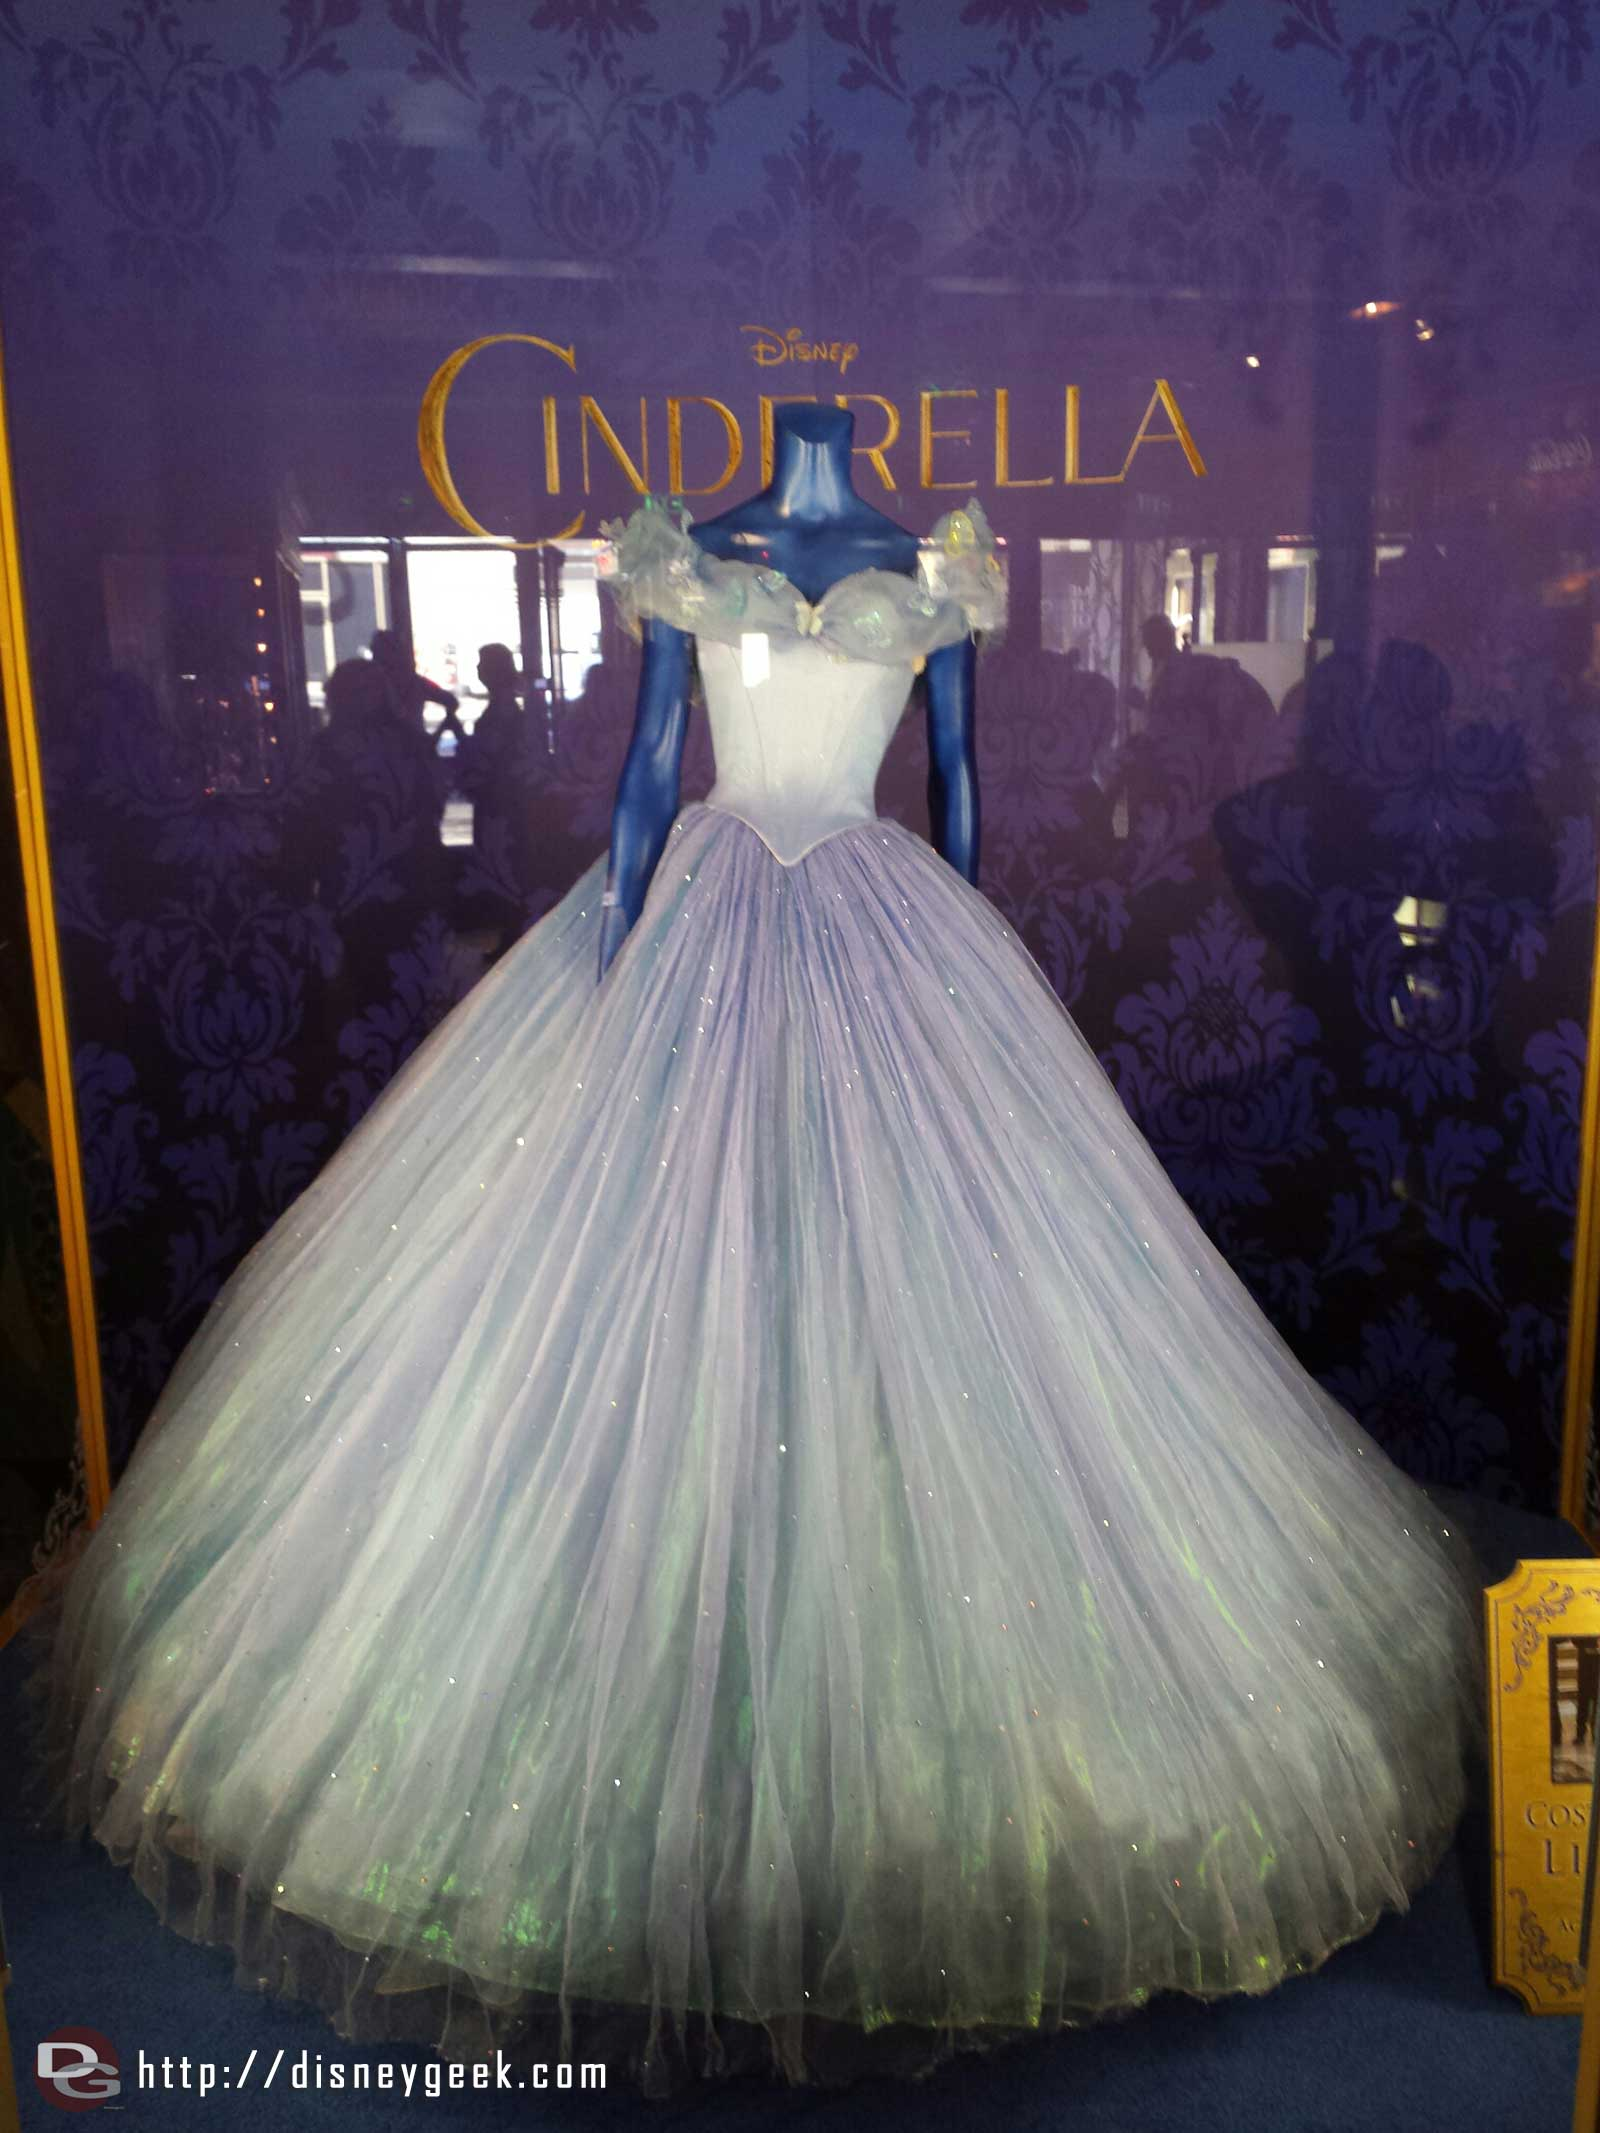 Cinderella's dress from the film at the El Capitan